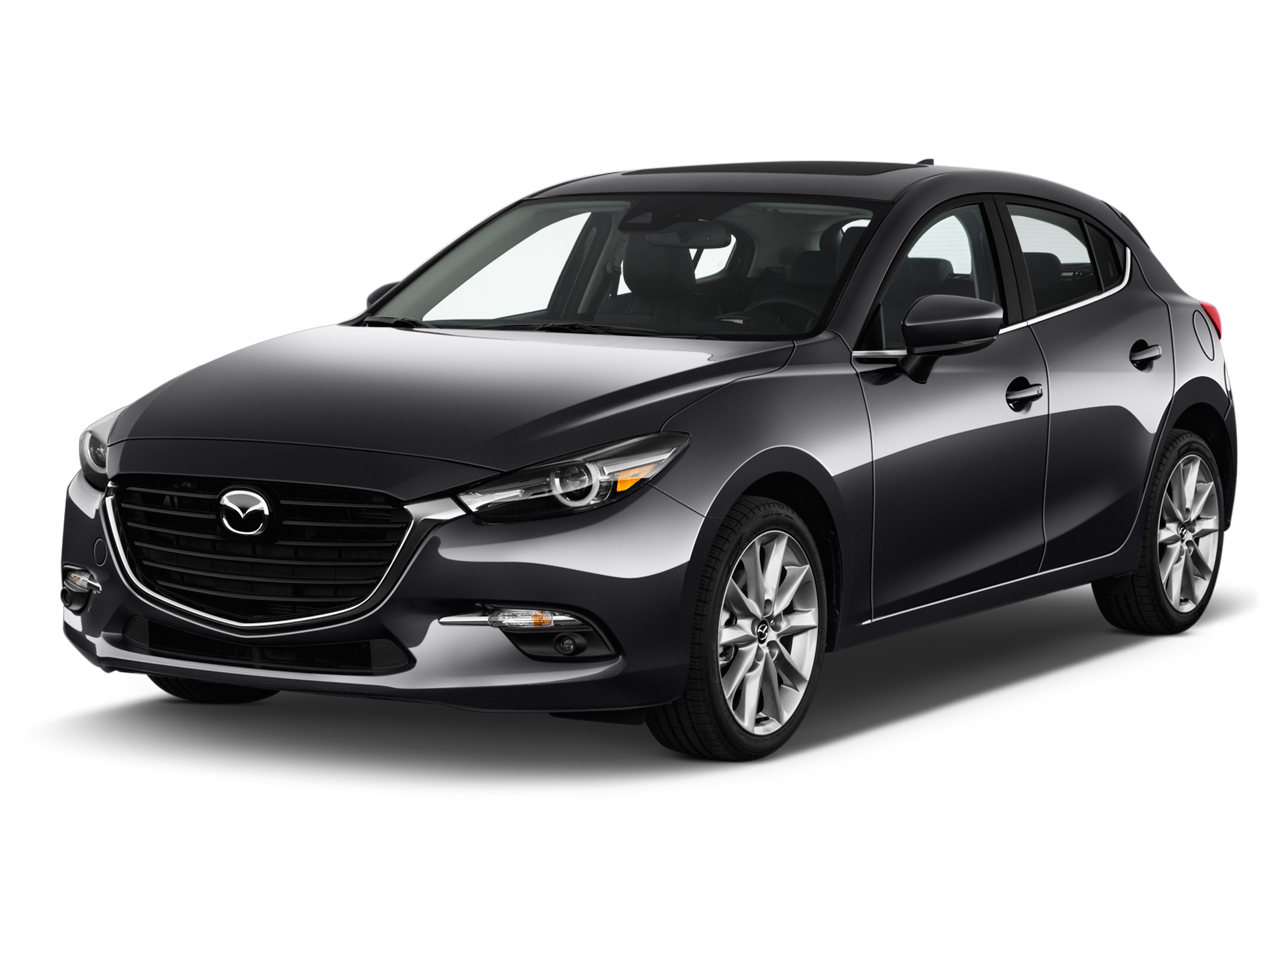 2017 mazda mazda3 5 door review ratings specs prices and photos the car connection. Black Bedroom Furniture Sets. Home Design Ideas